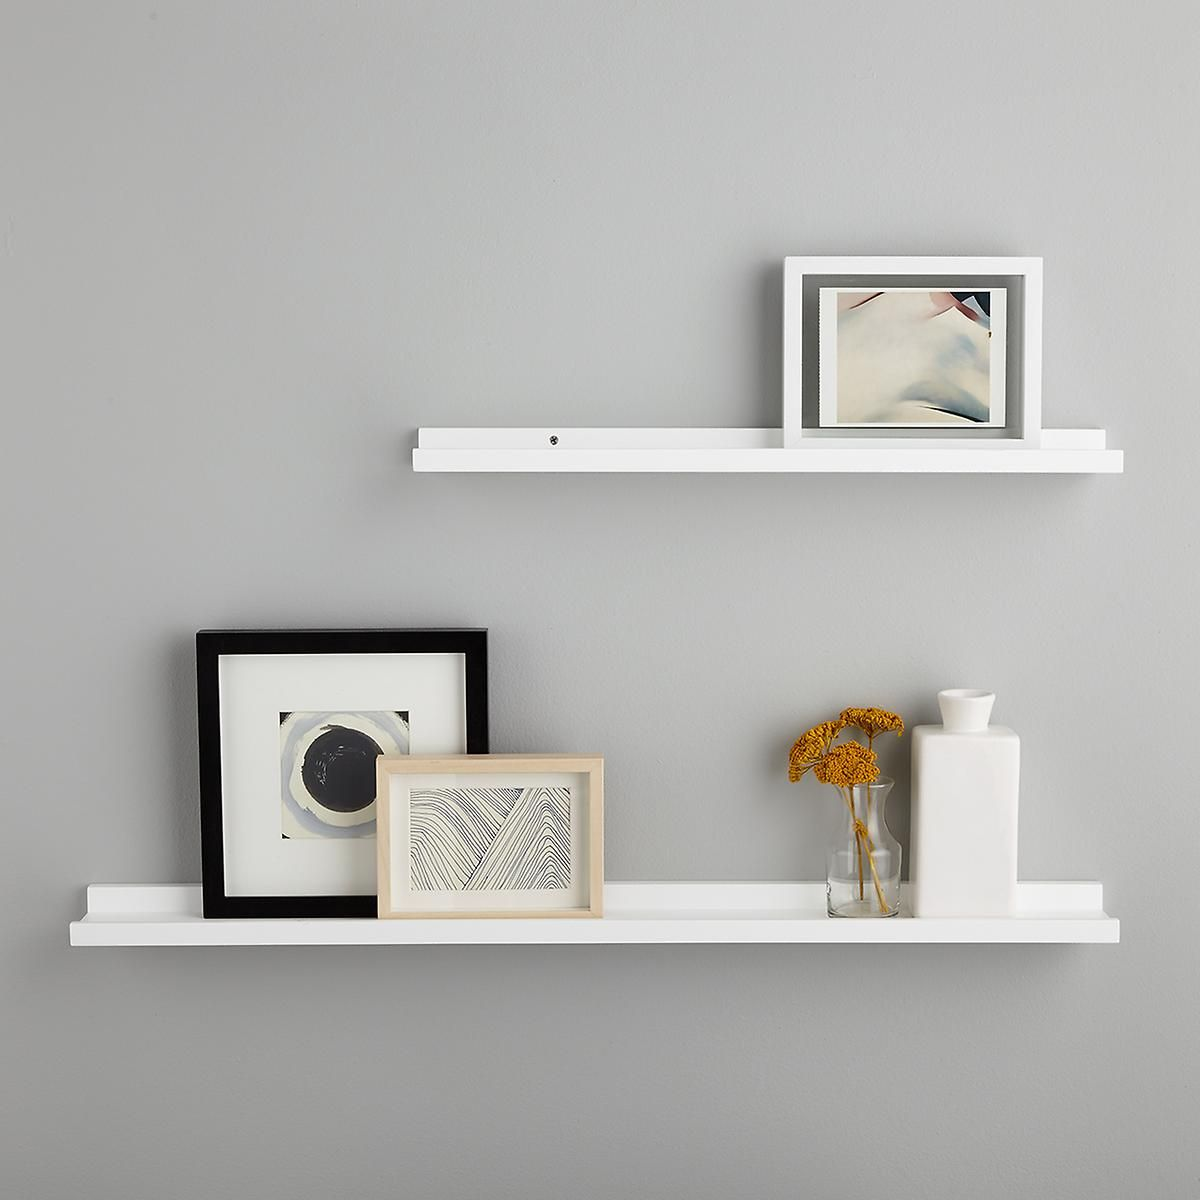 White Ledge Wall Shelves The Container Store White Wall